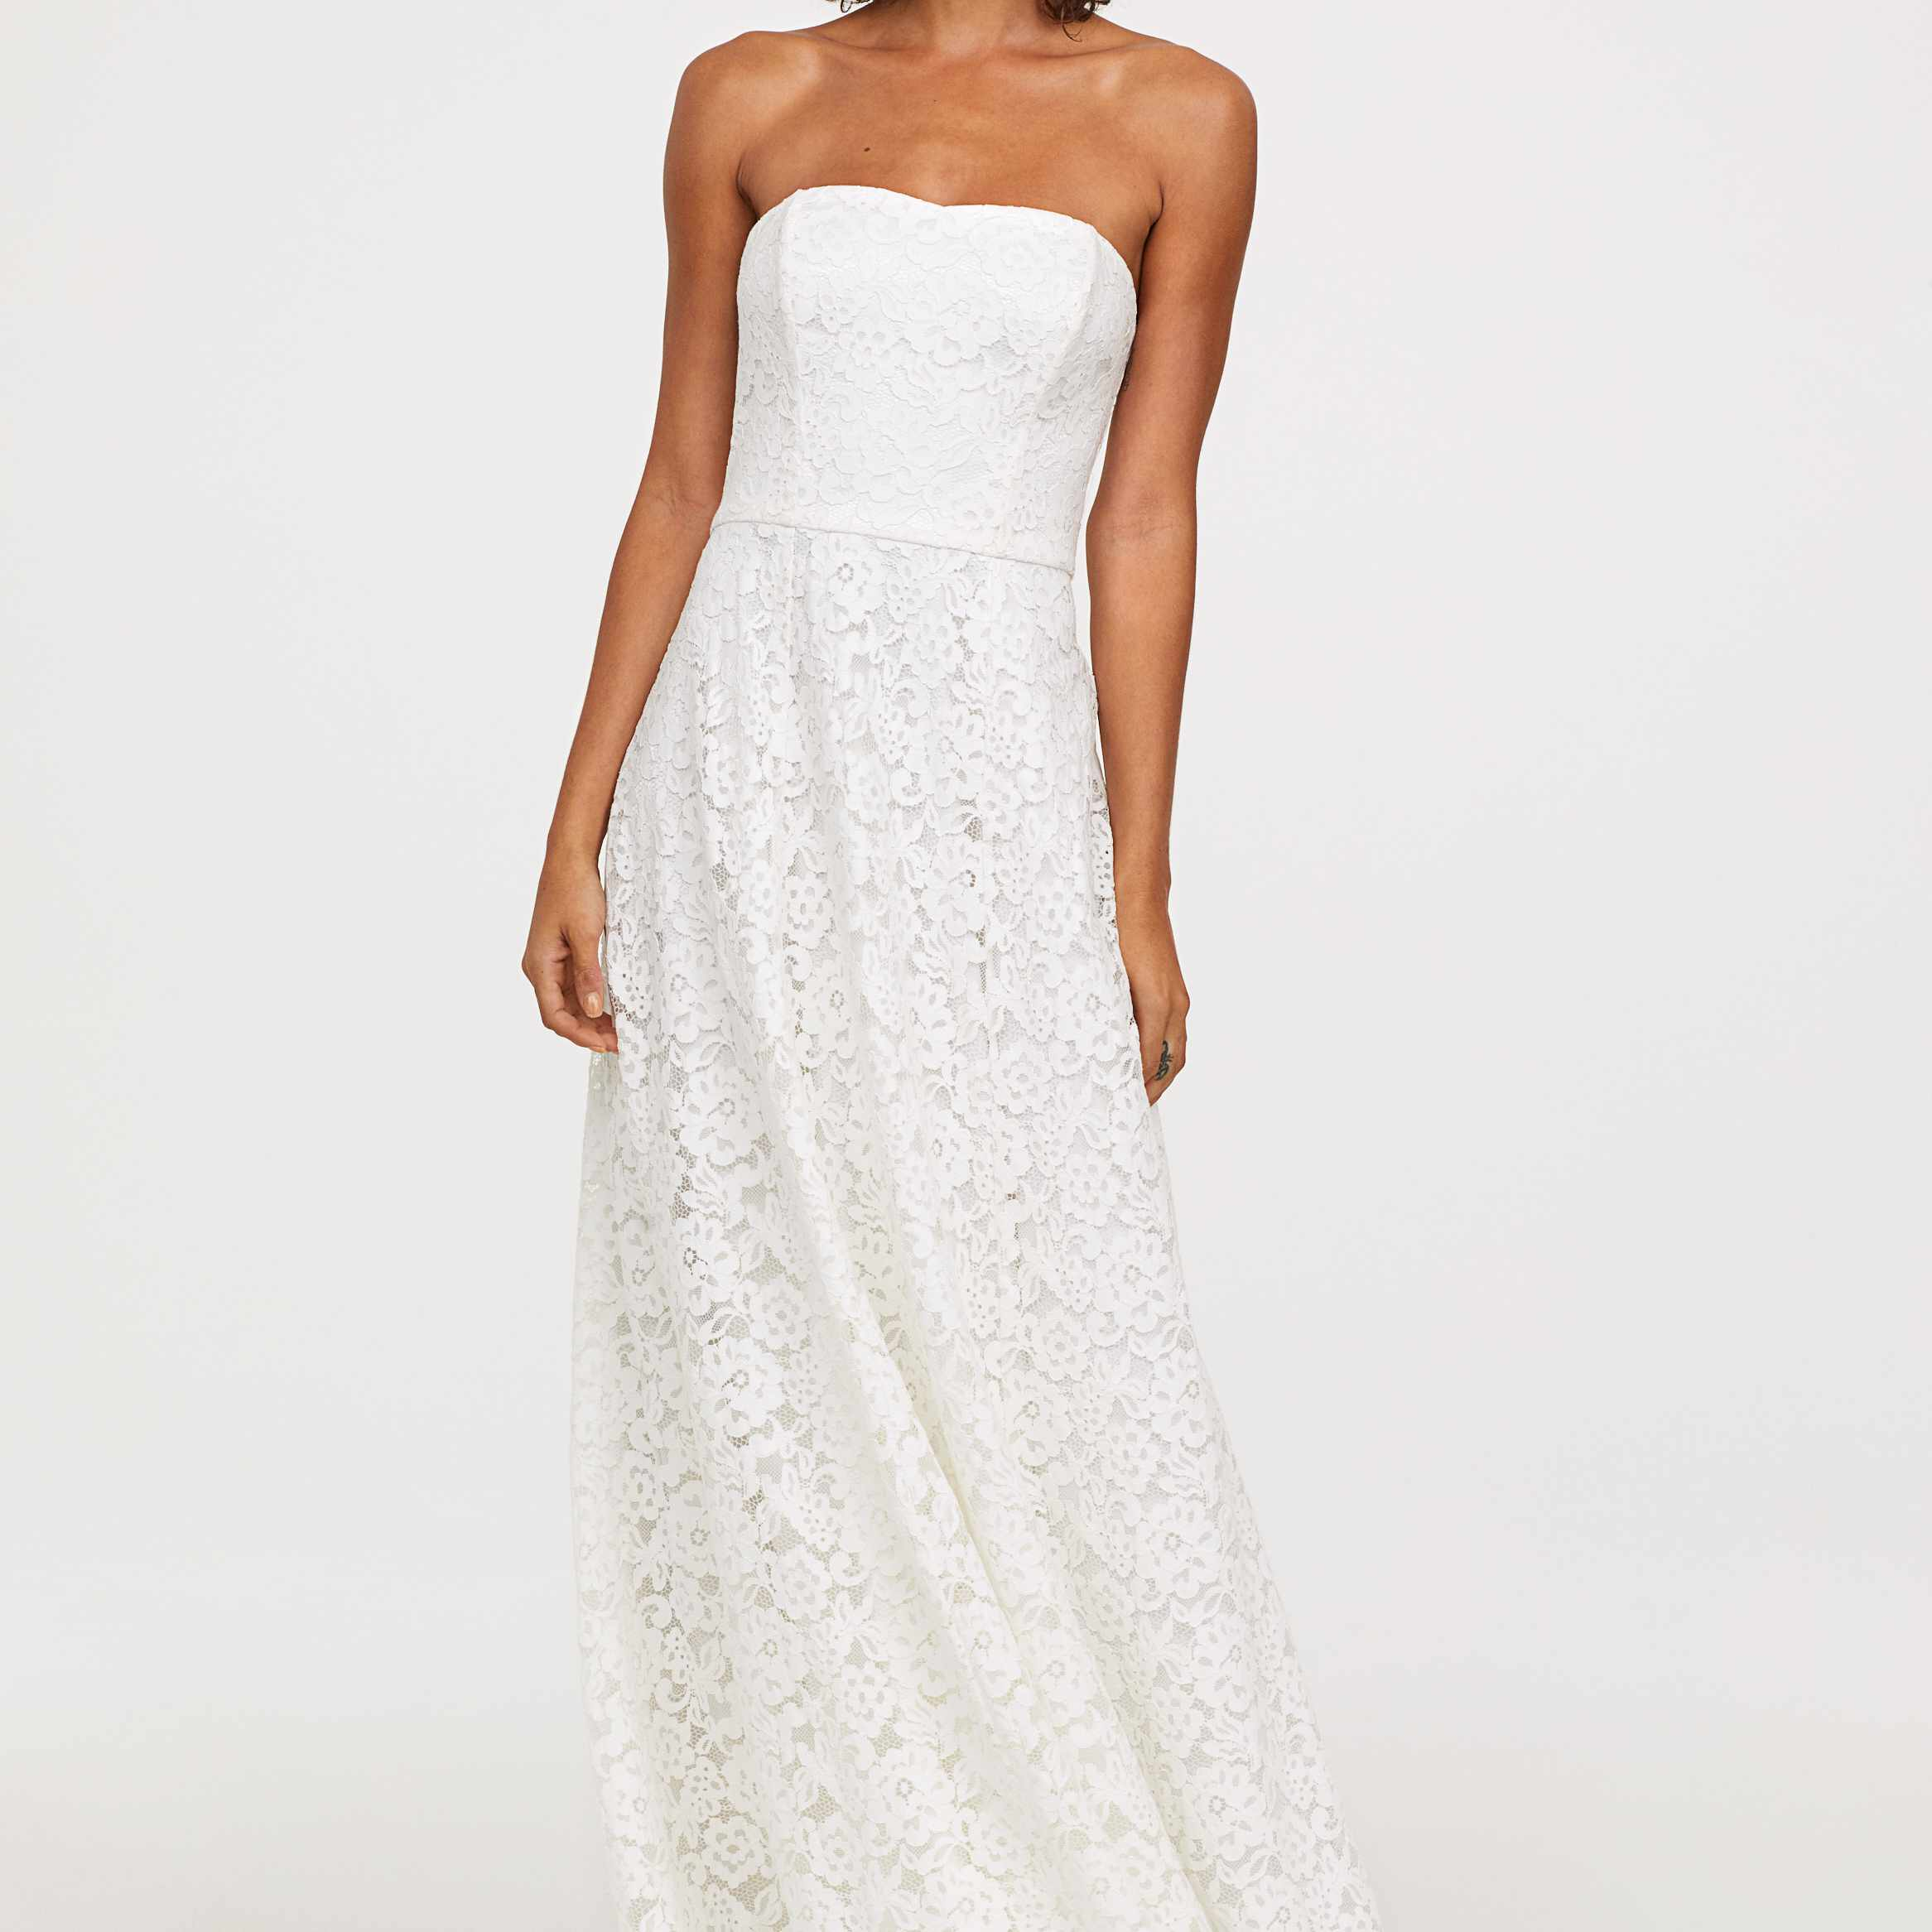 Hm Wedding Dress.Dreams Do Come True H M Bridal Shop Is Officially Here